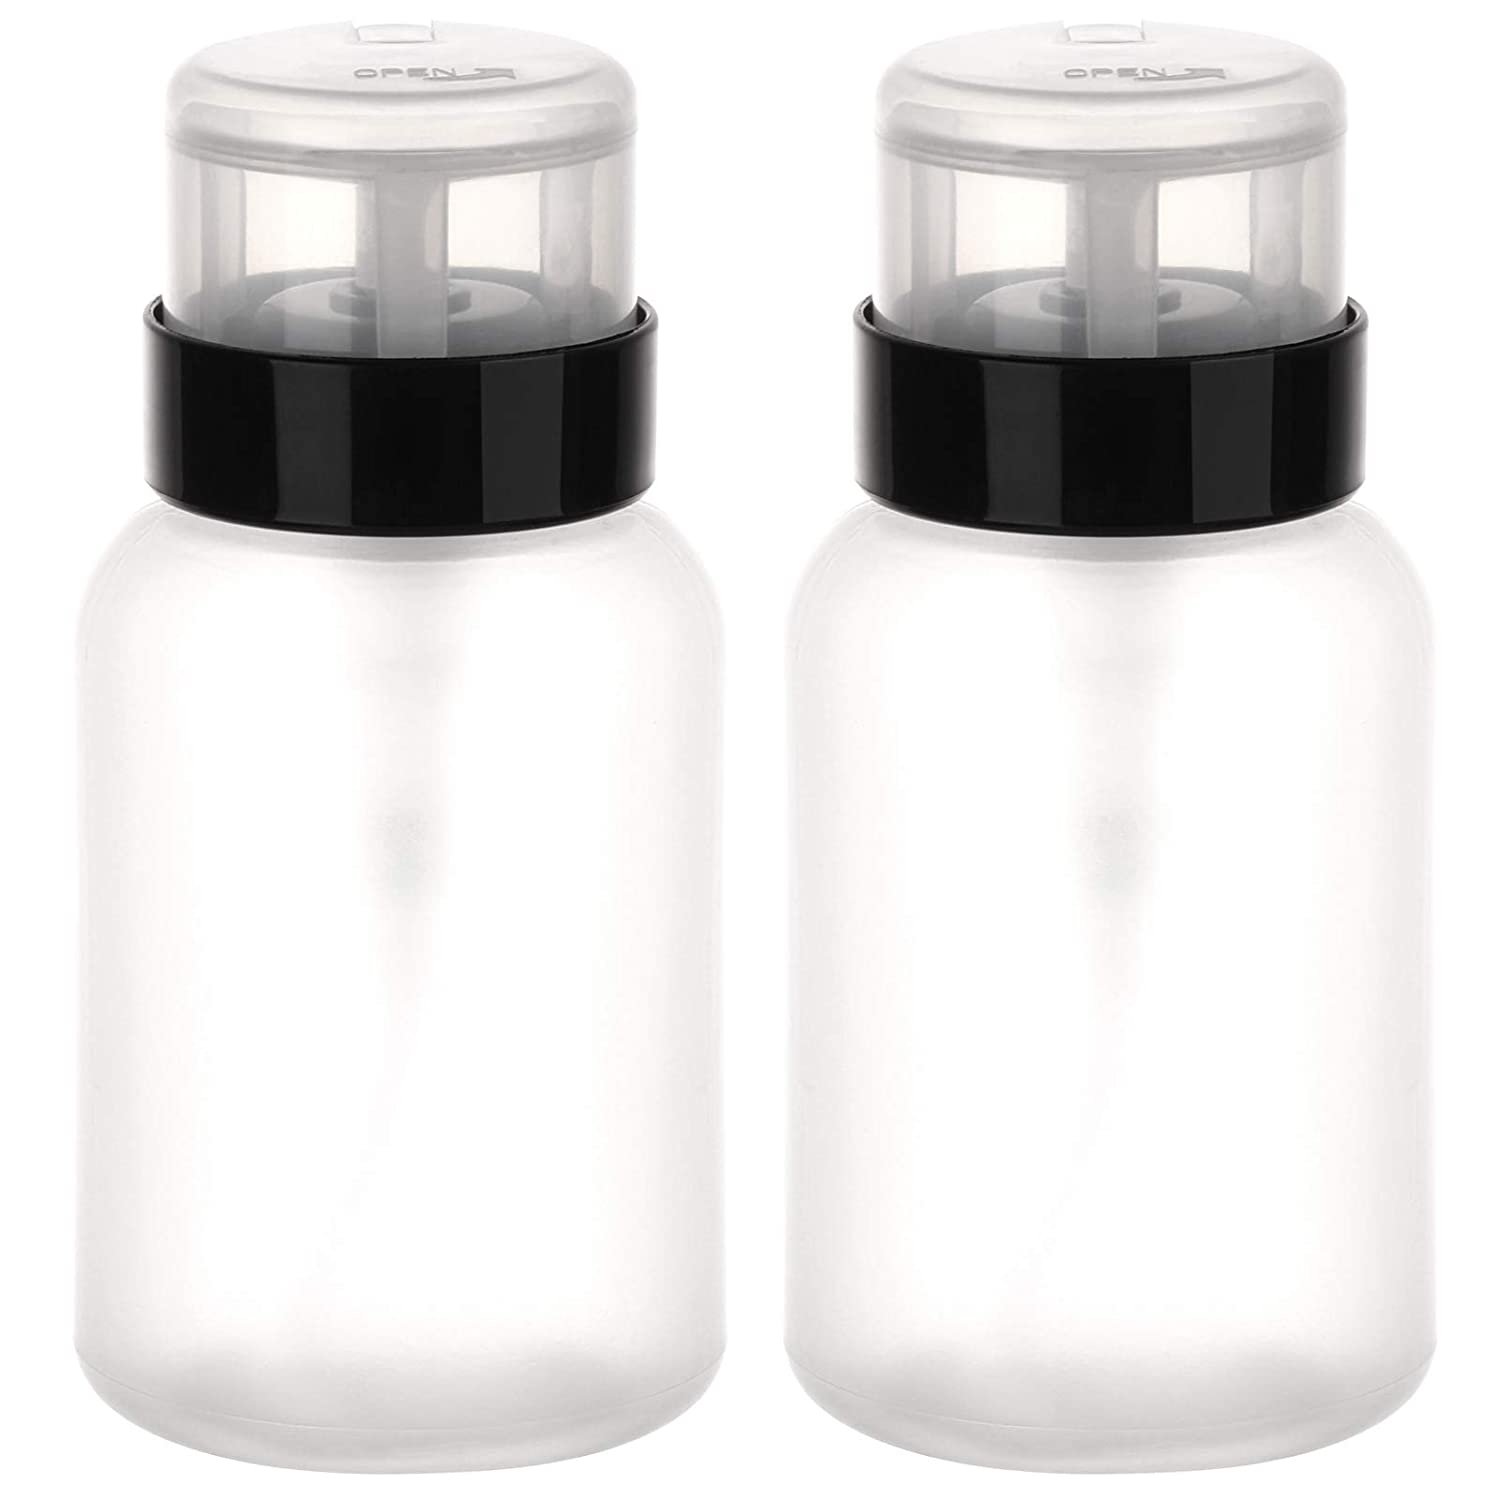 Pack of 2 Push Down Pump Bottle Dispenser Lockable for Alcohol Oakland Mall Now free shipping